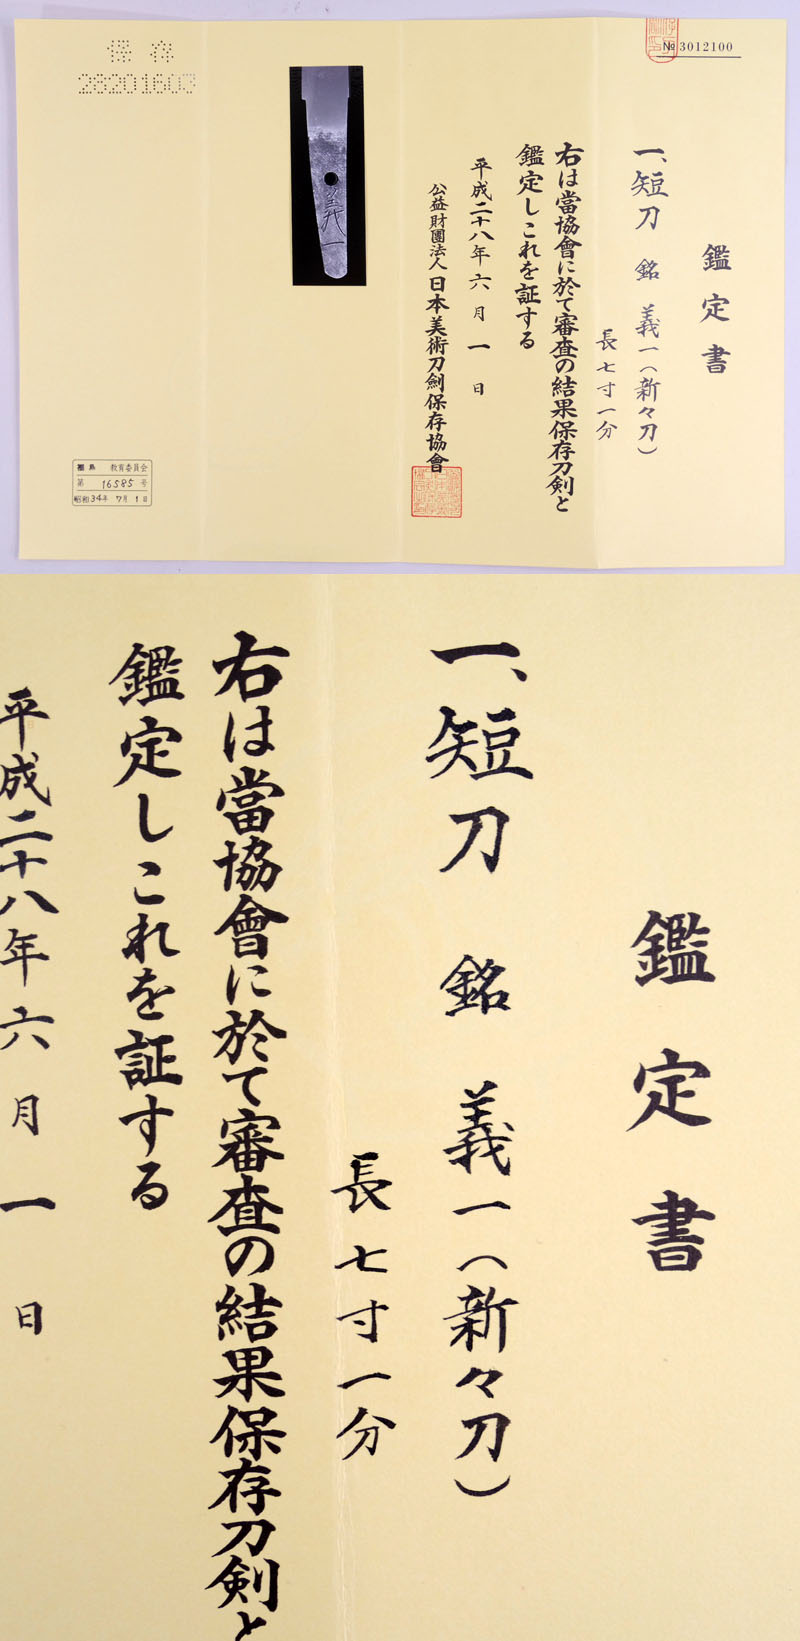 義一 Picture of Certificate